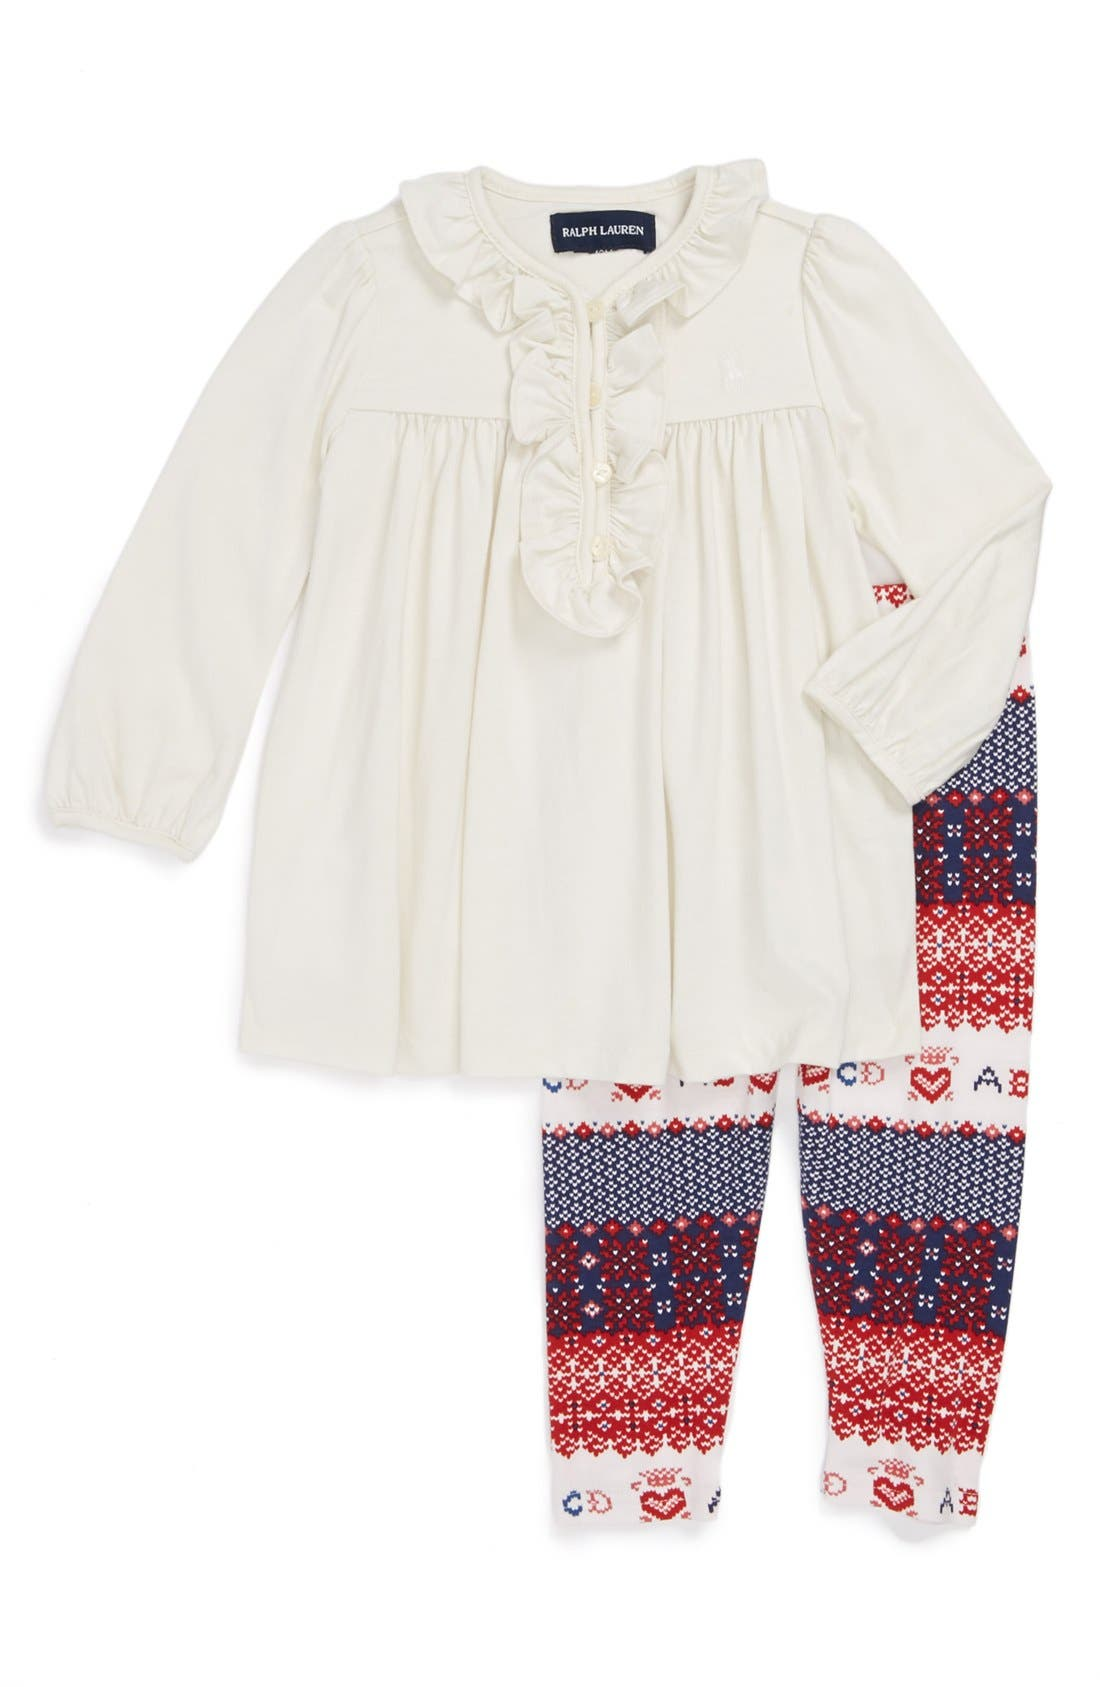 Main Image - Ralph Lauren Tunic & Print Leggings (Baby Girls)